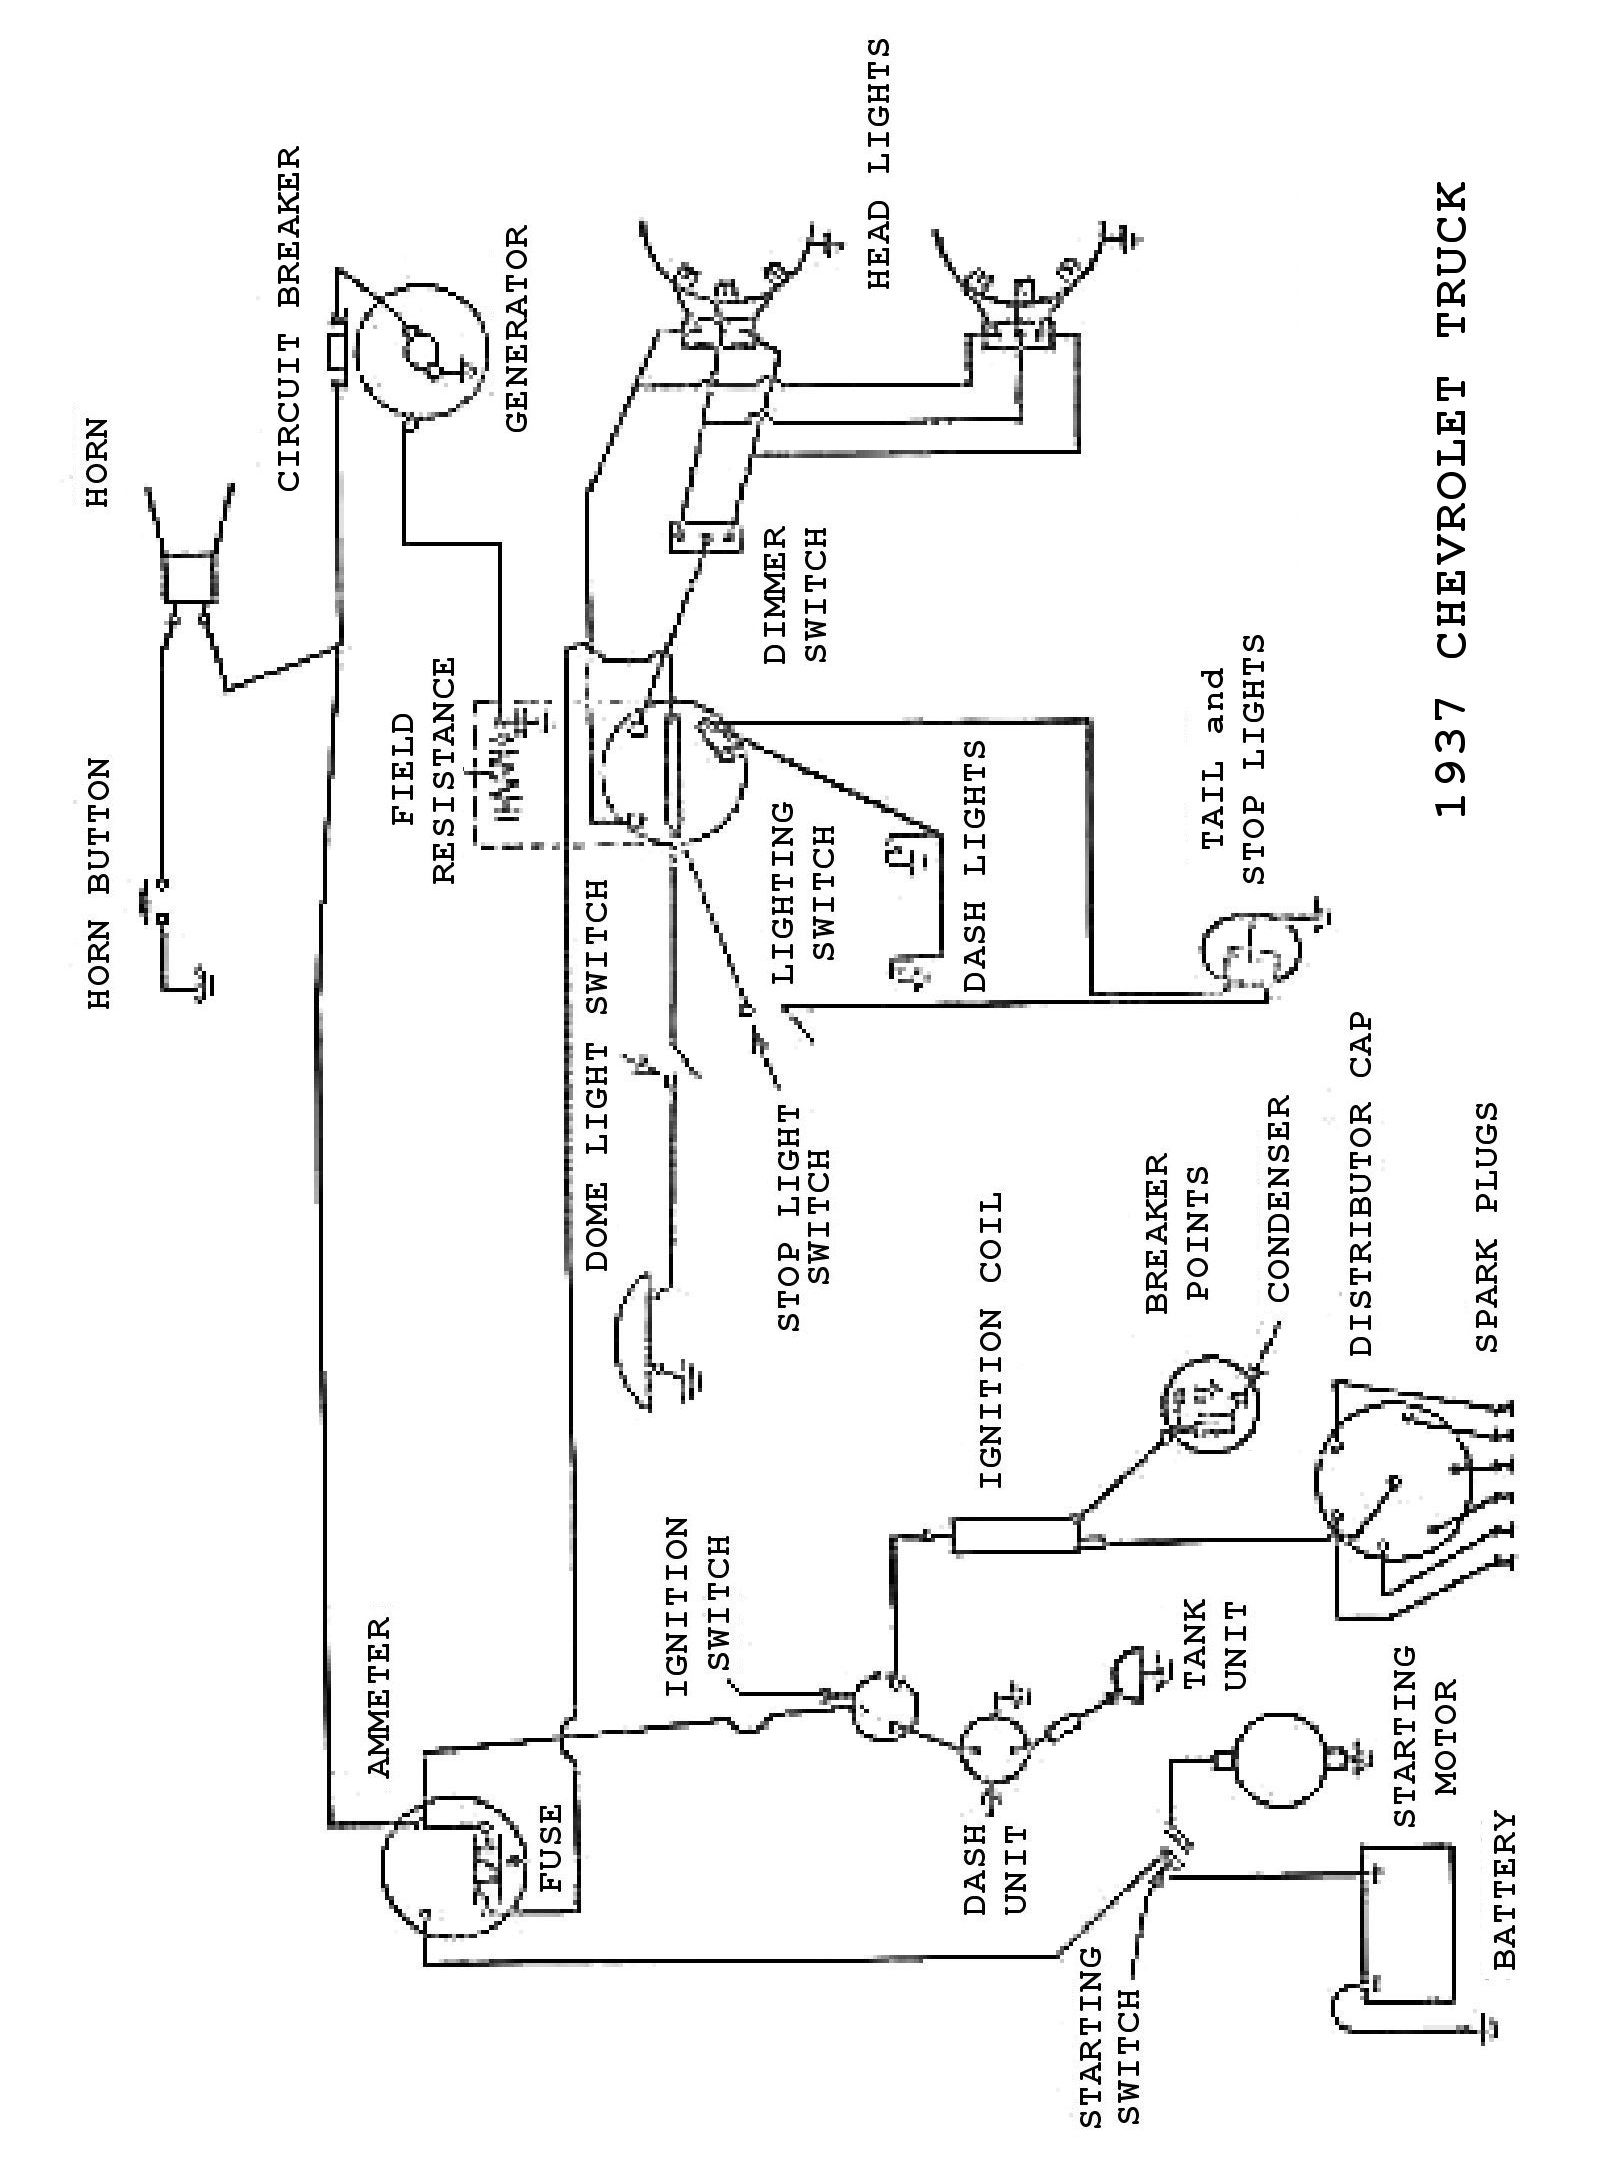 Chevy Generator Wiring Diagram Data For Honda Diagrams Generac